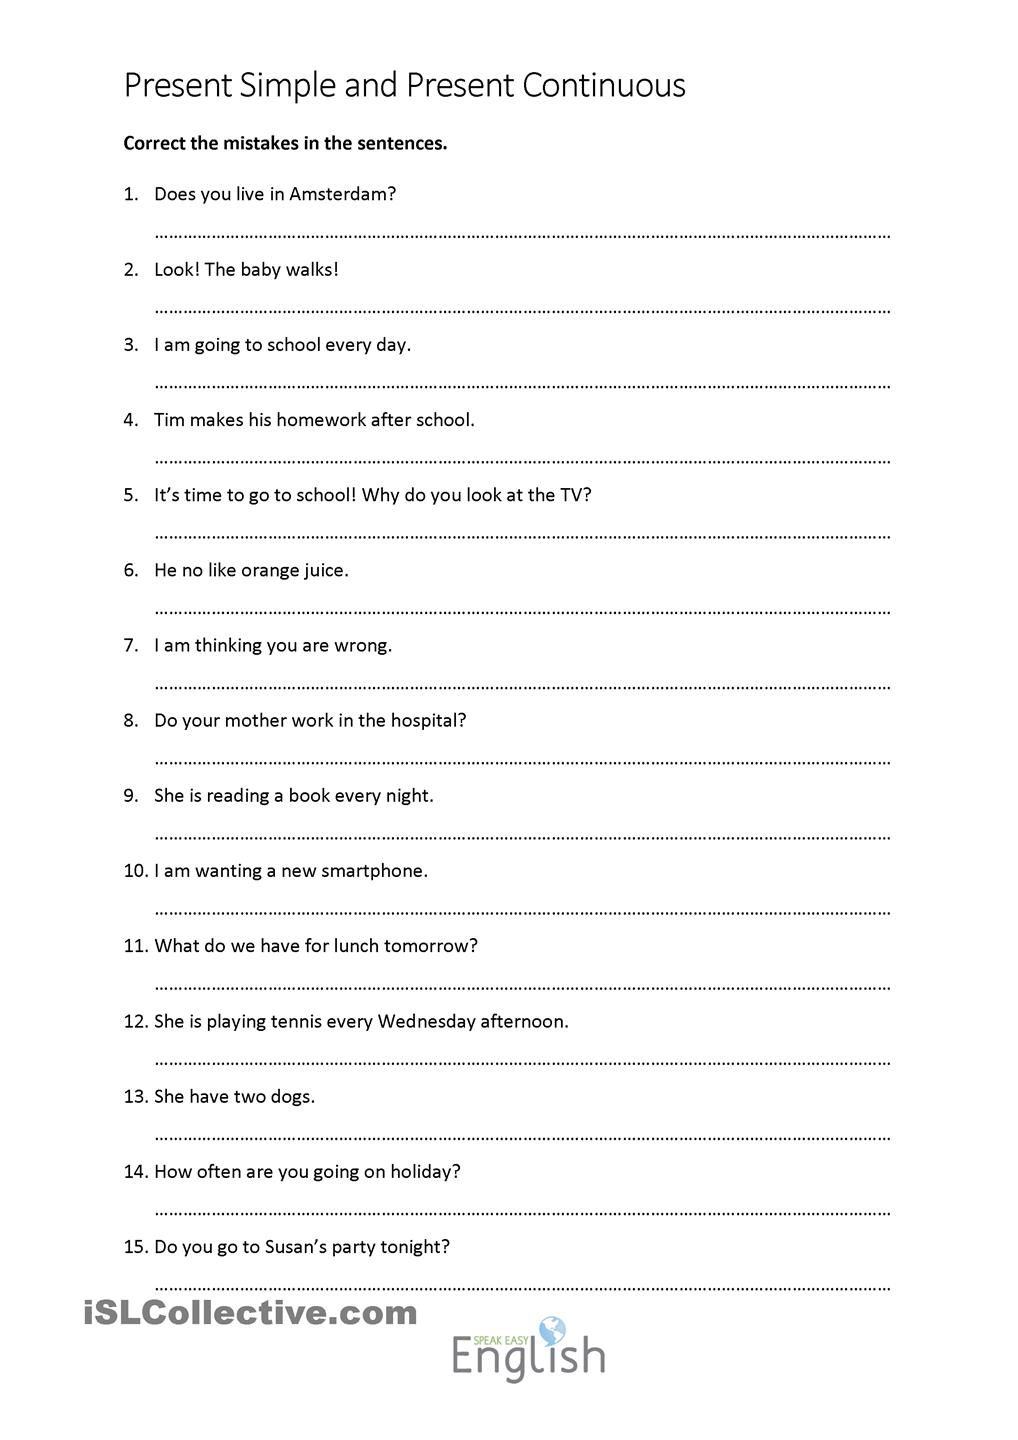 Present Simple/continuous Error Correction With Answers | Teaching | Free Printable Sentence Correction Worksheets